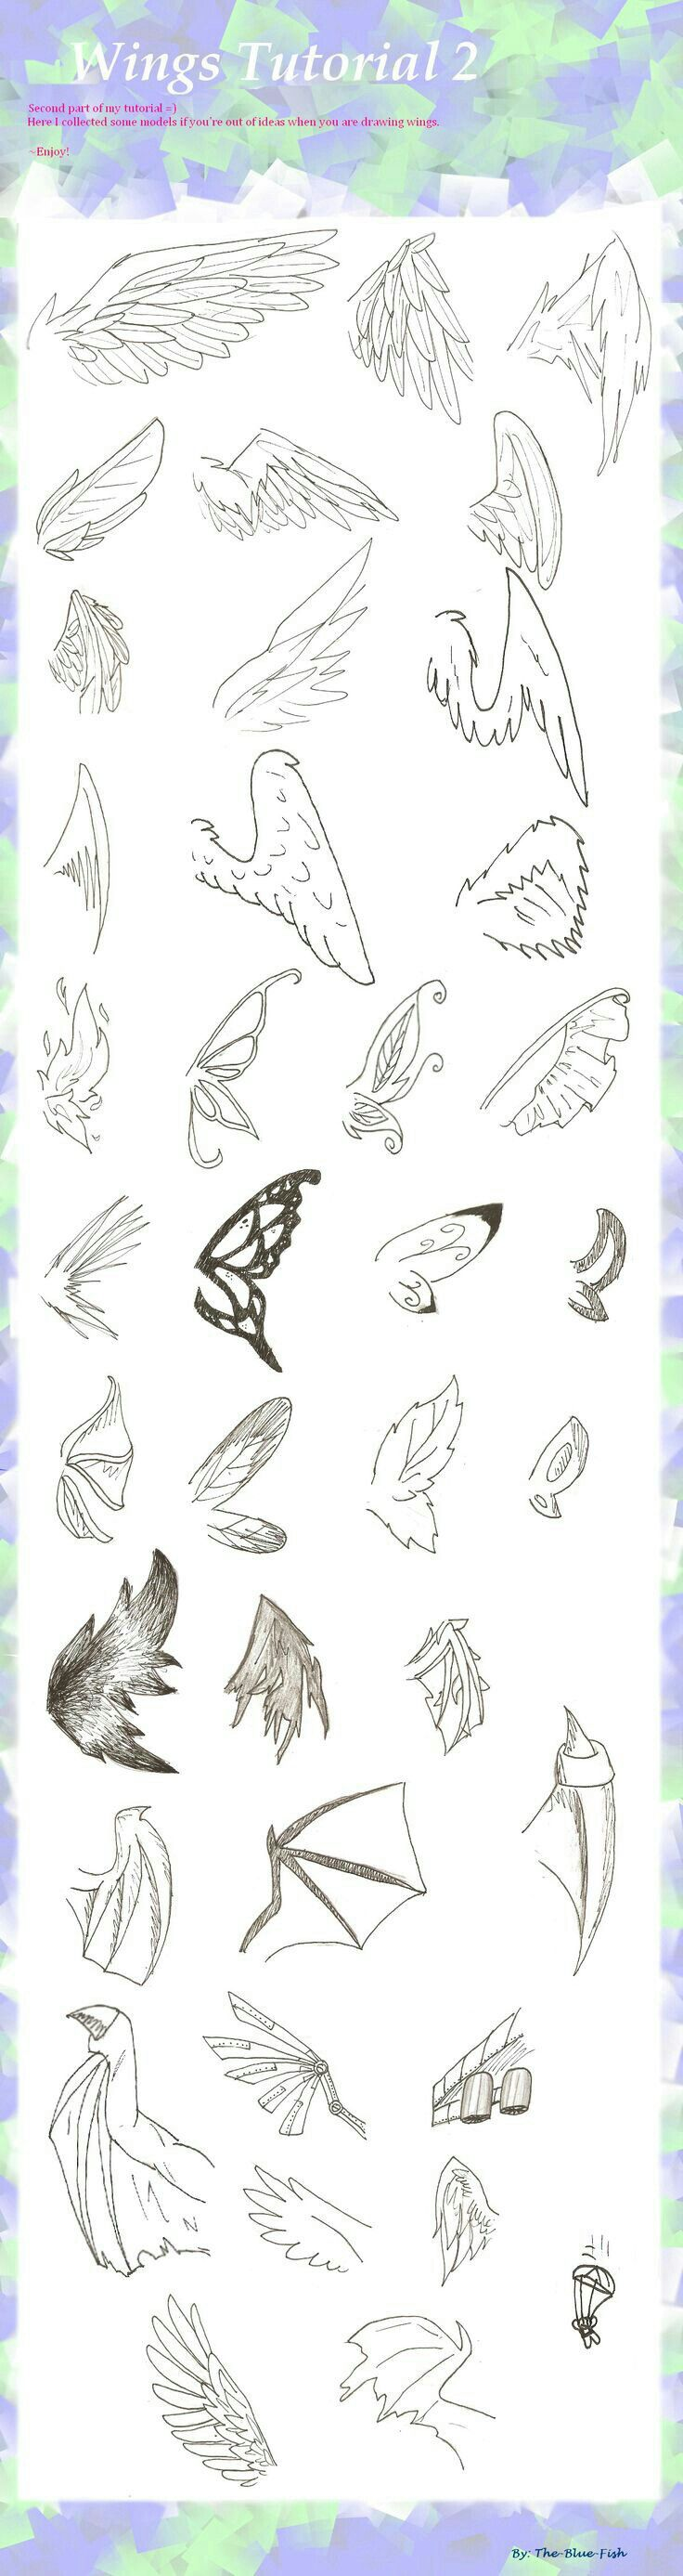 Wings tutorial drawing infographic.